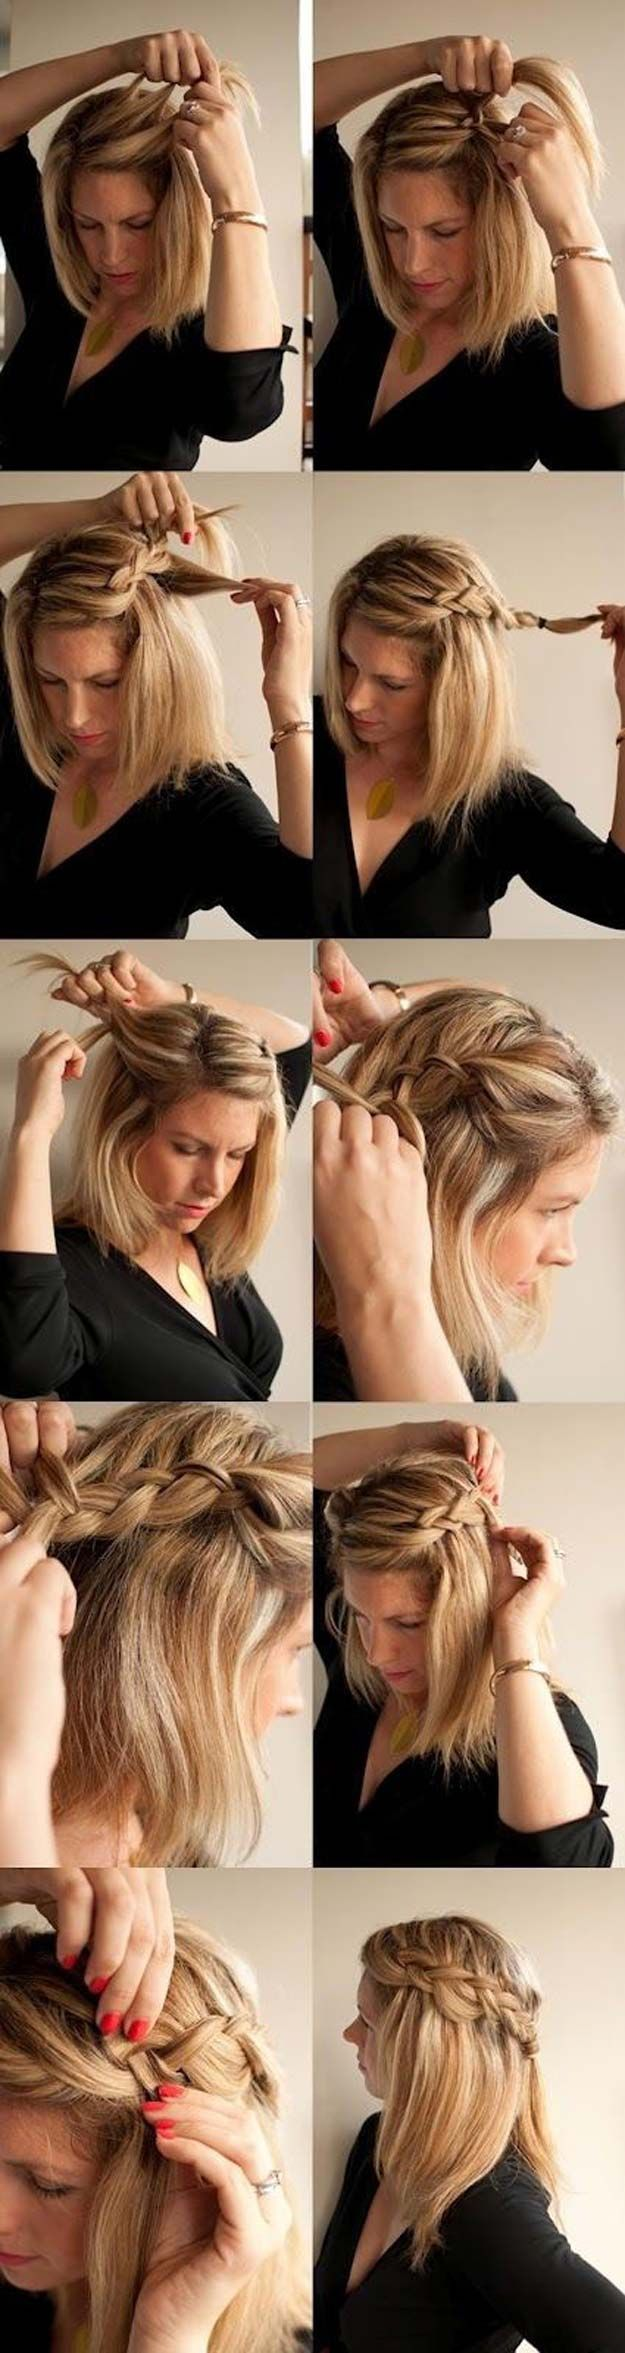 The 48 Best Medium-Length Hairstyles to Steal For Yourself - Easy Braid Hairstyle - The Best Medium-Length Hairstyles and Haircuts For Thick Hair. These Tutorials Are For Women Looking For An Easy Undo or A Hair Style With Bangs Or With Layers. Check Out The Tutorials On Long Bobs Or For Curly and Fine Hair. These Medium-Length Hairstyles and Haircuts Will Work For Round Faces As Well. Try These If You Have Blonde Hair, Brunette Hair, Just Got Highlights Or A Balayage…